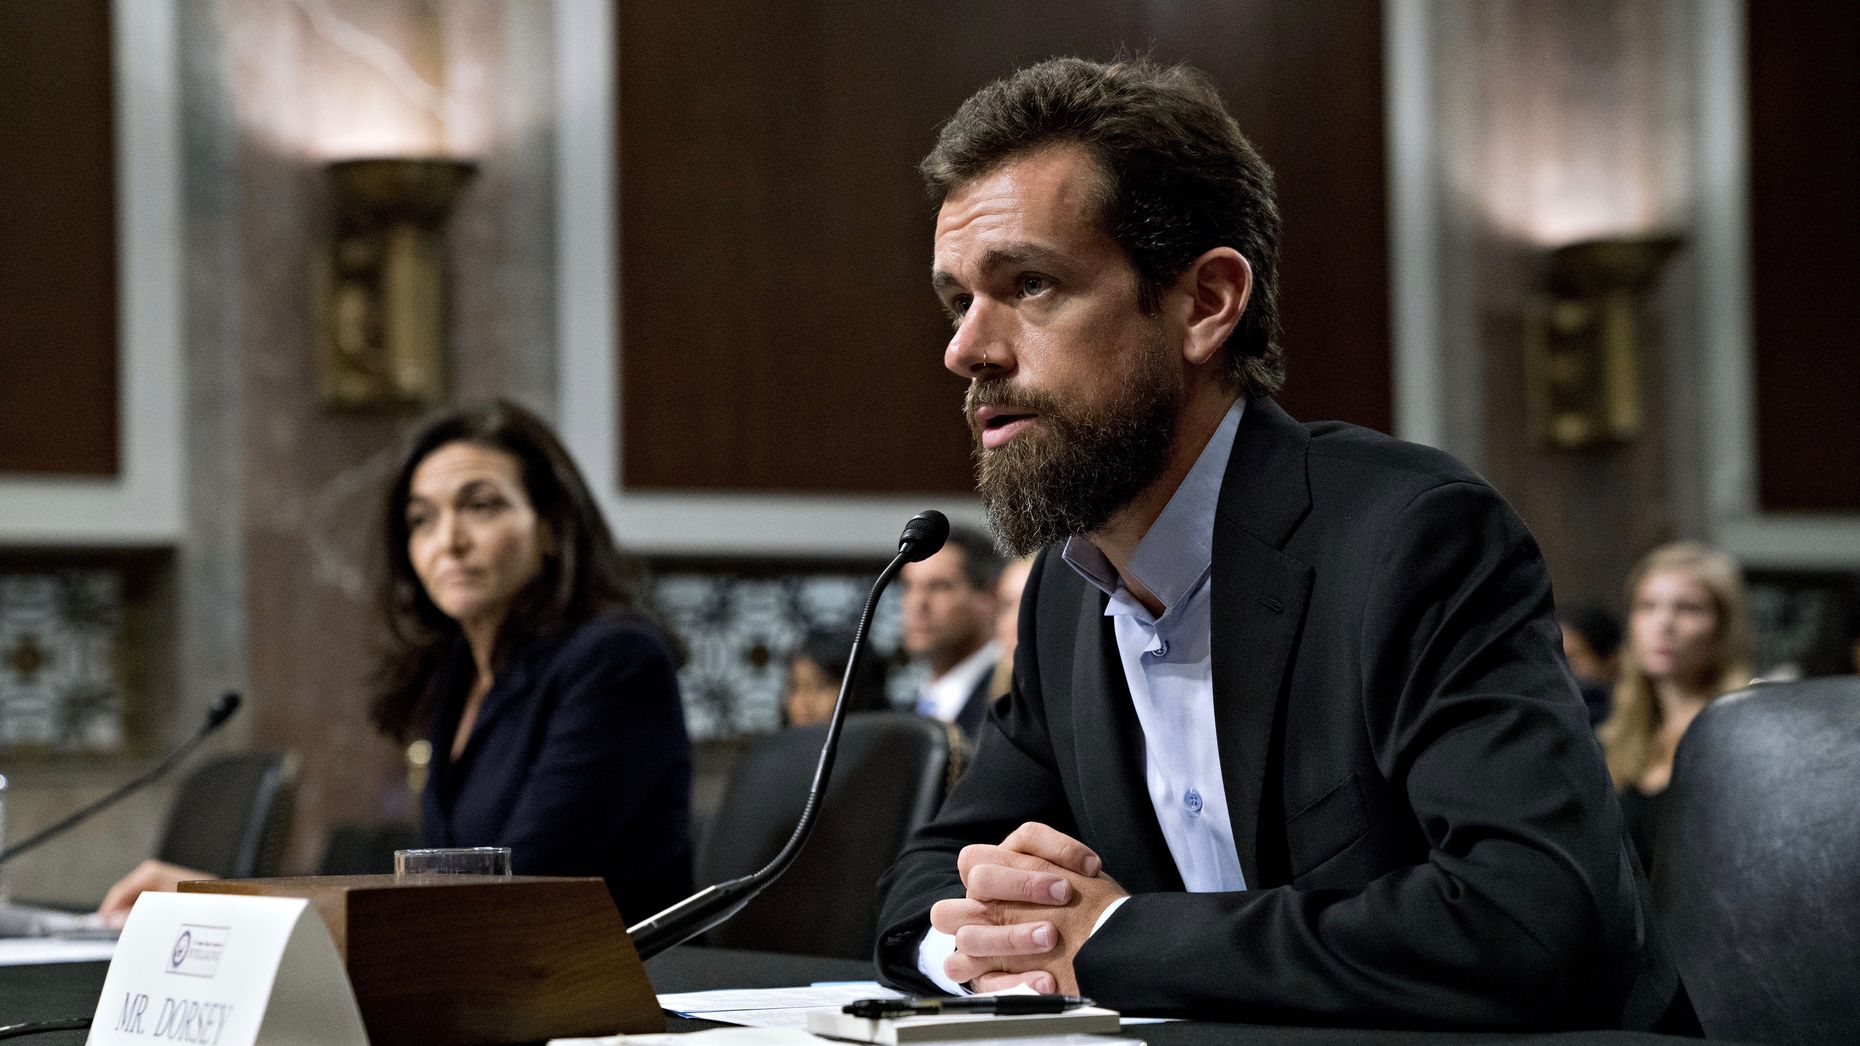 Facebook COO Sheryl Sandberg and Twitter CEO Jack Dorsey on Capitol Hill on Wednesday. Photo by Bloomberg